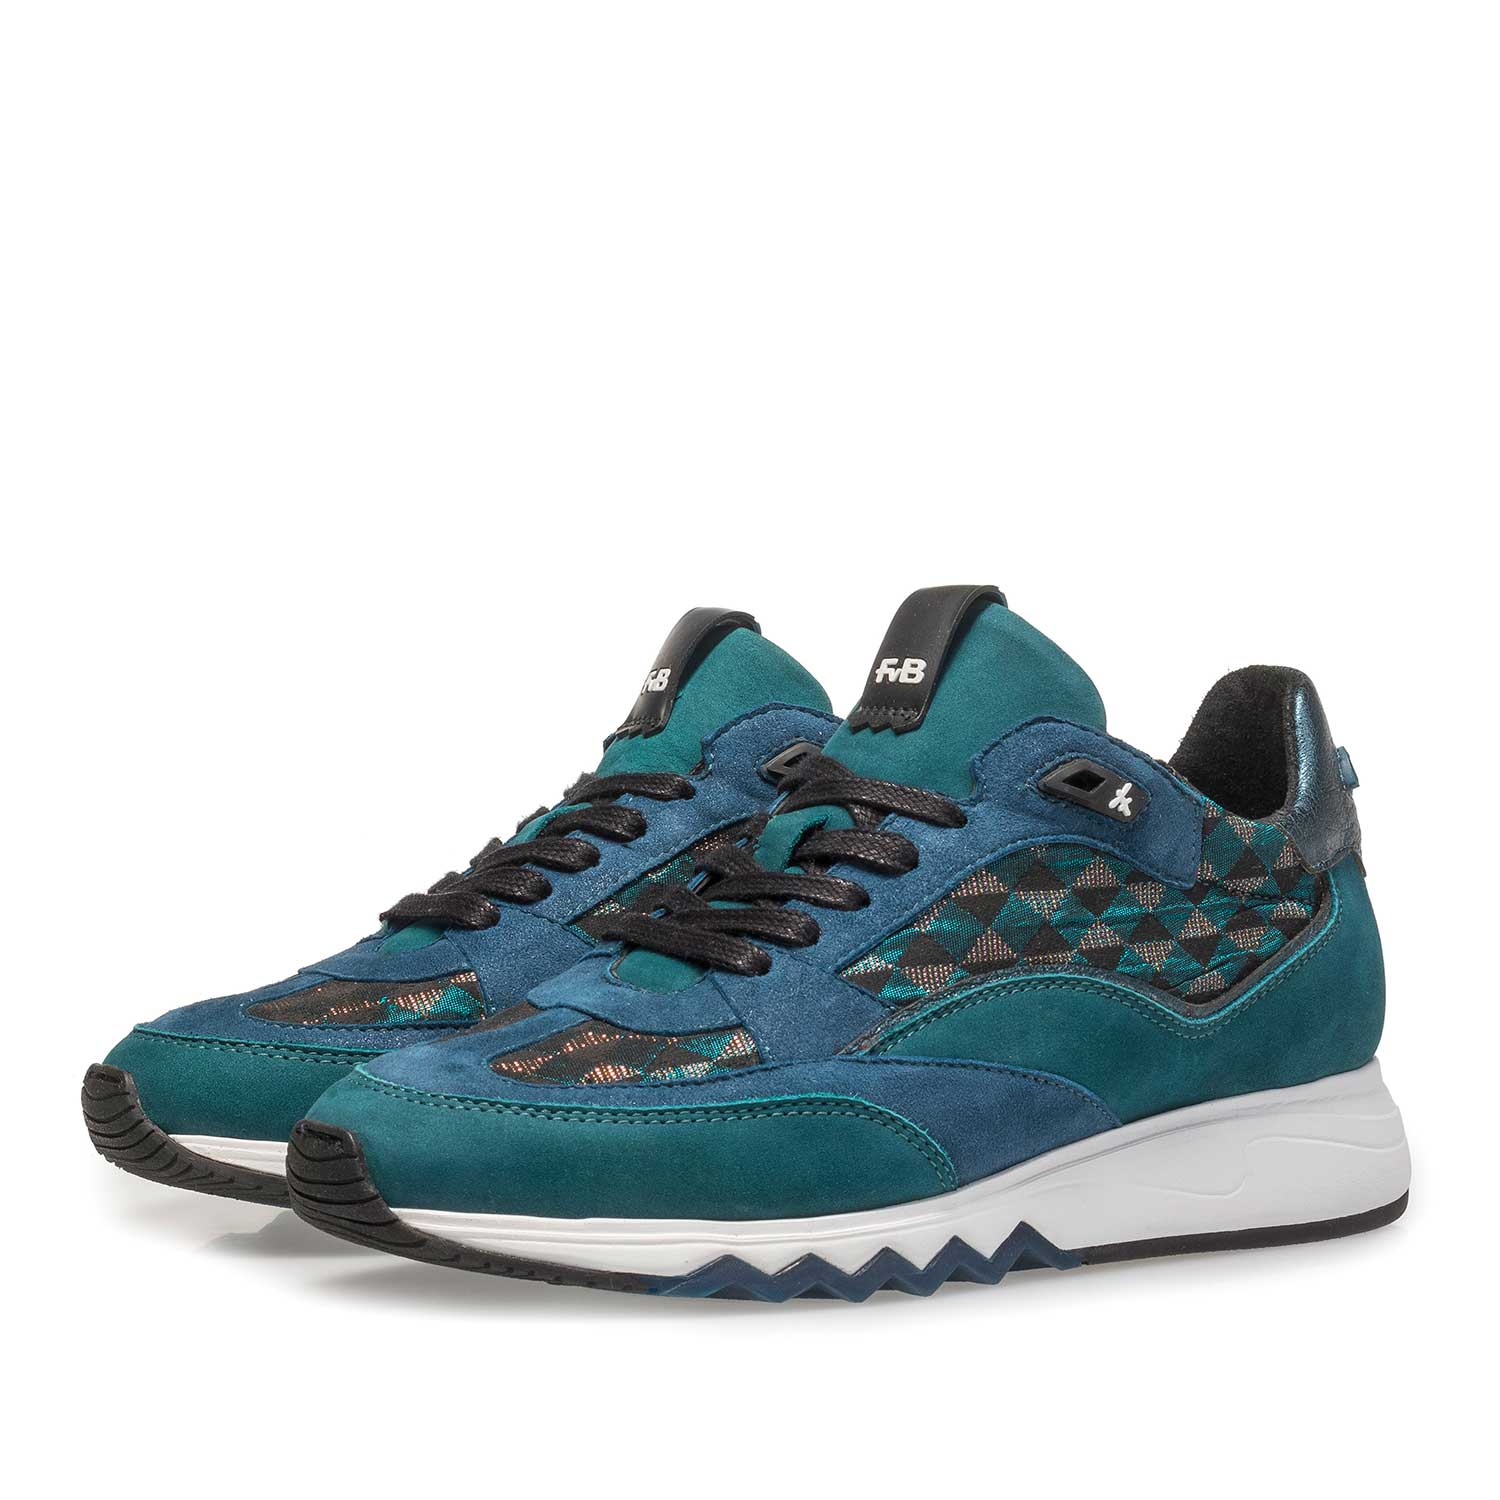 85289/02 - Green suede leather sneaker with graphic print